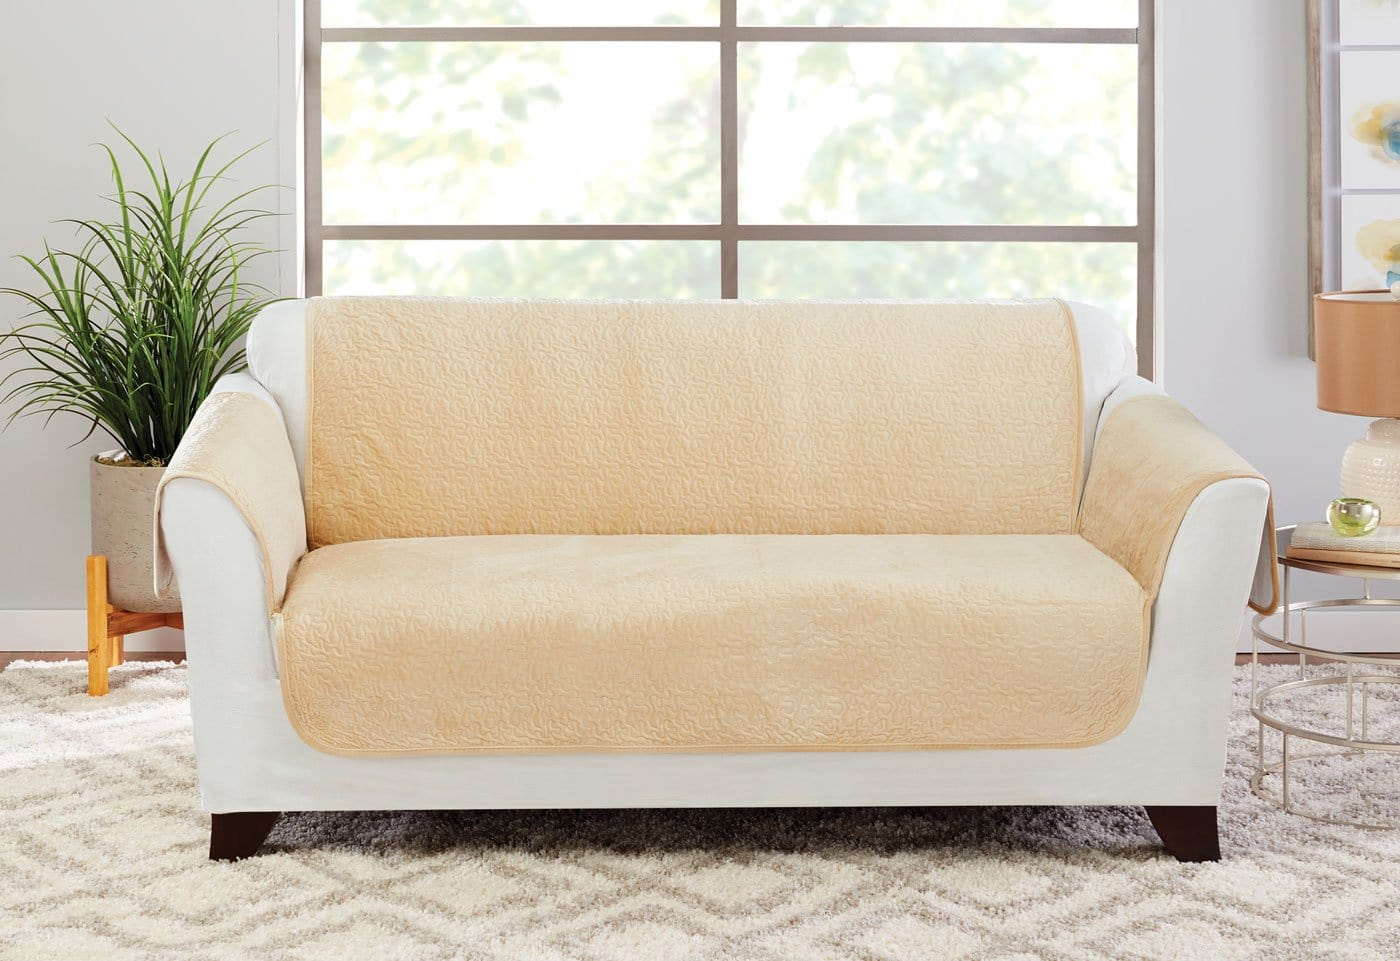 Elegant Vermicelli Loveseat Furniture Cover 100% Polyester Pet Furniture Cover Machine Washable - Loveseat / Champagne